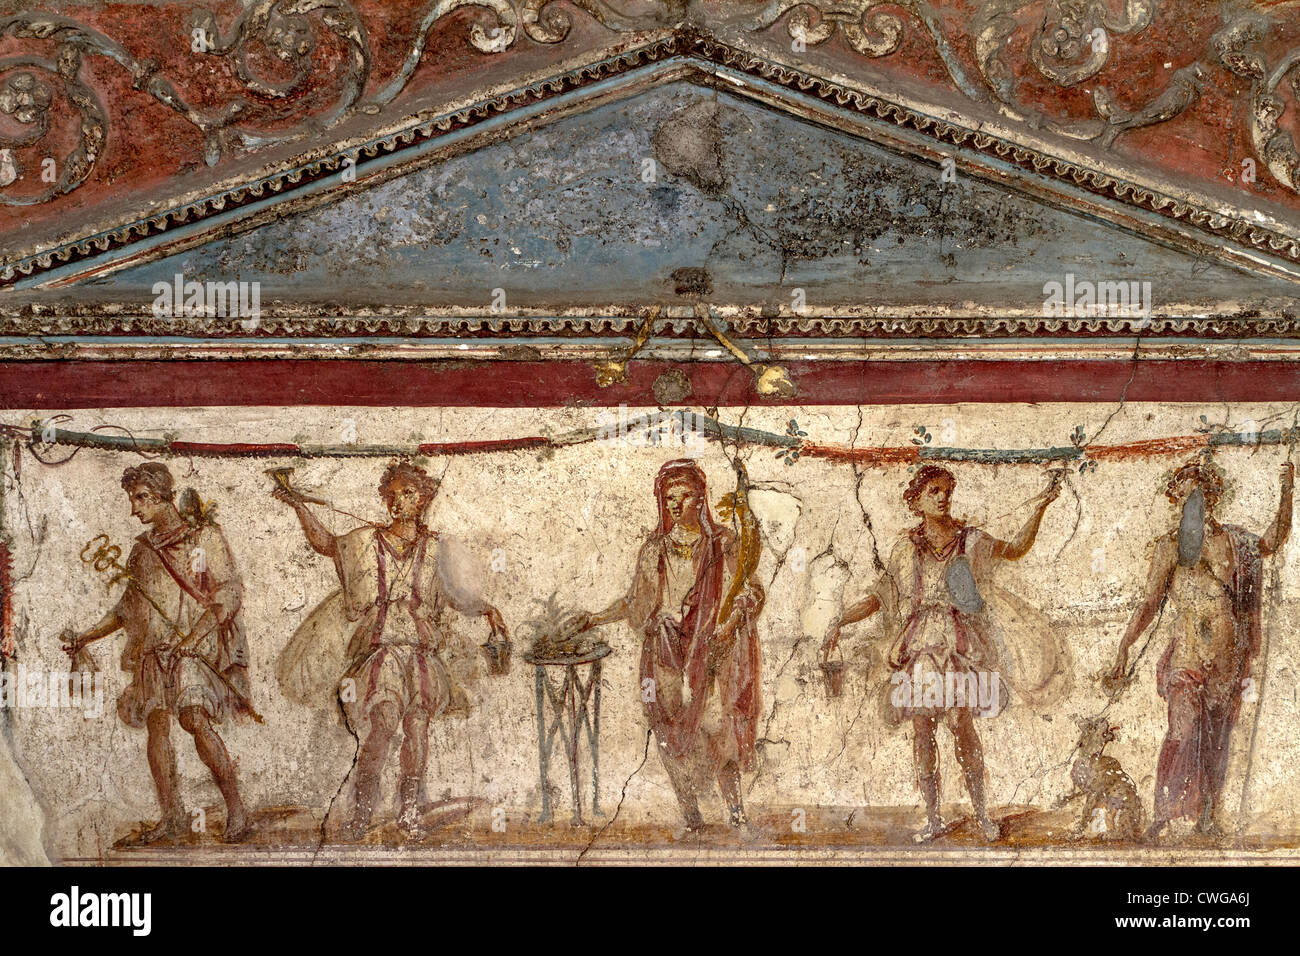 Ancient roman mural at the excavated city of pompeii stock for Ancient roman mural